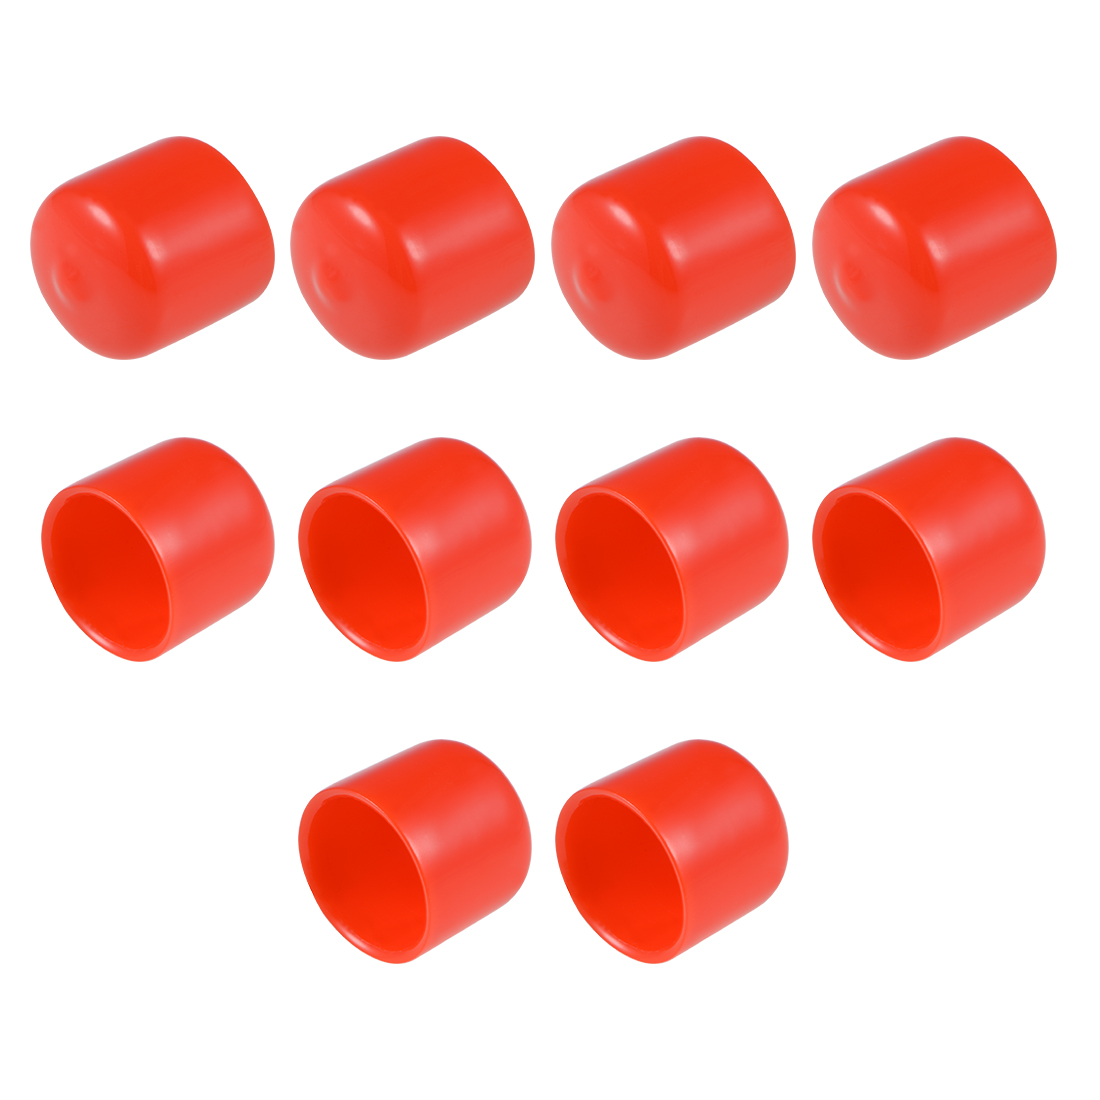 Screw Thread Protector, 22mm ID Round End Cap Cover Red Tube Caps 10pcs